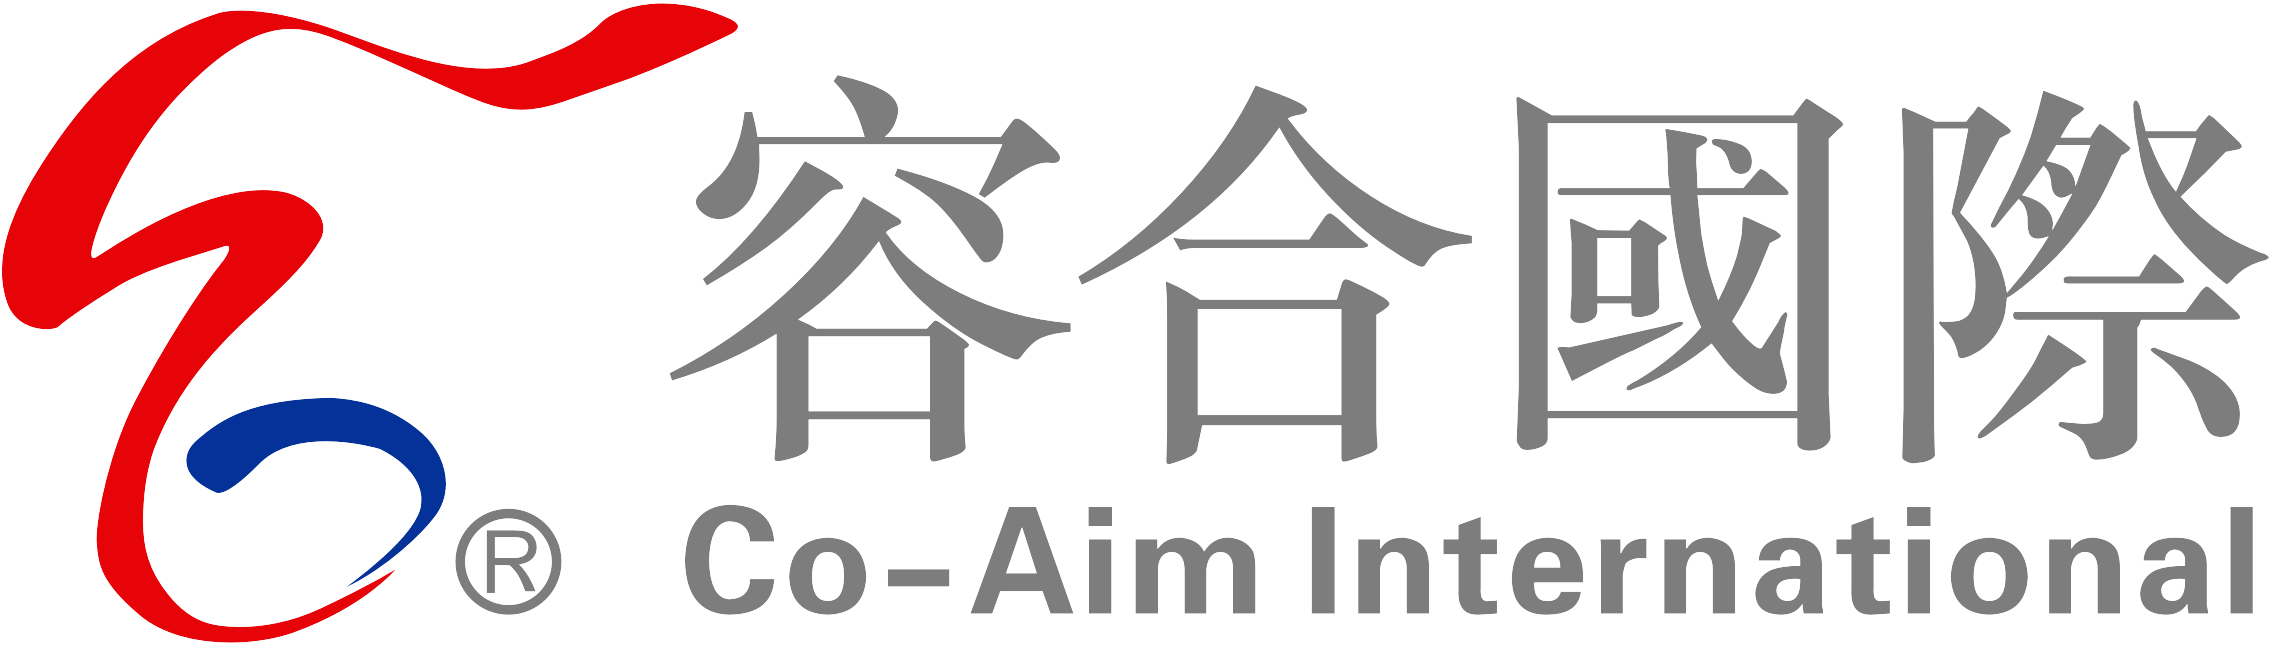 Co-Aim International